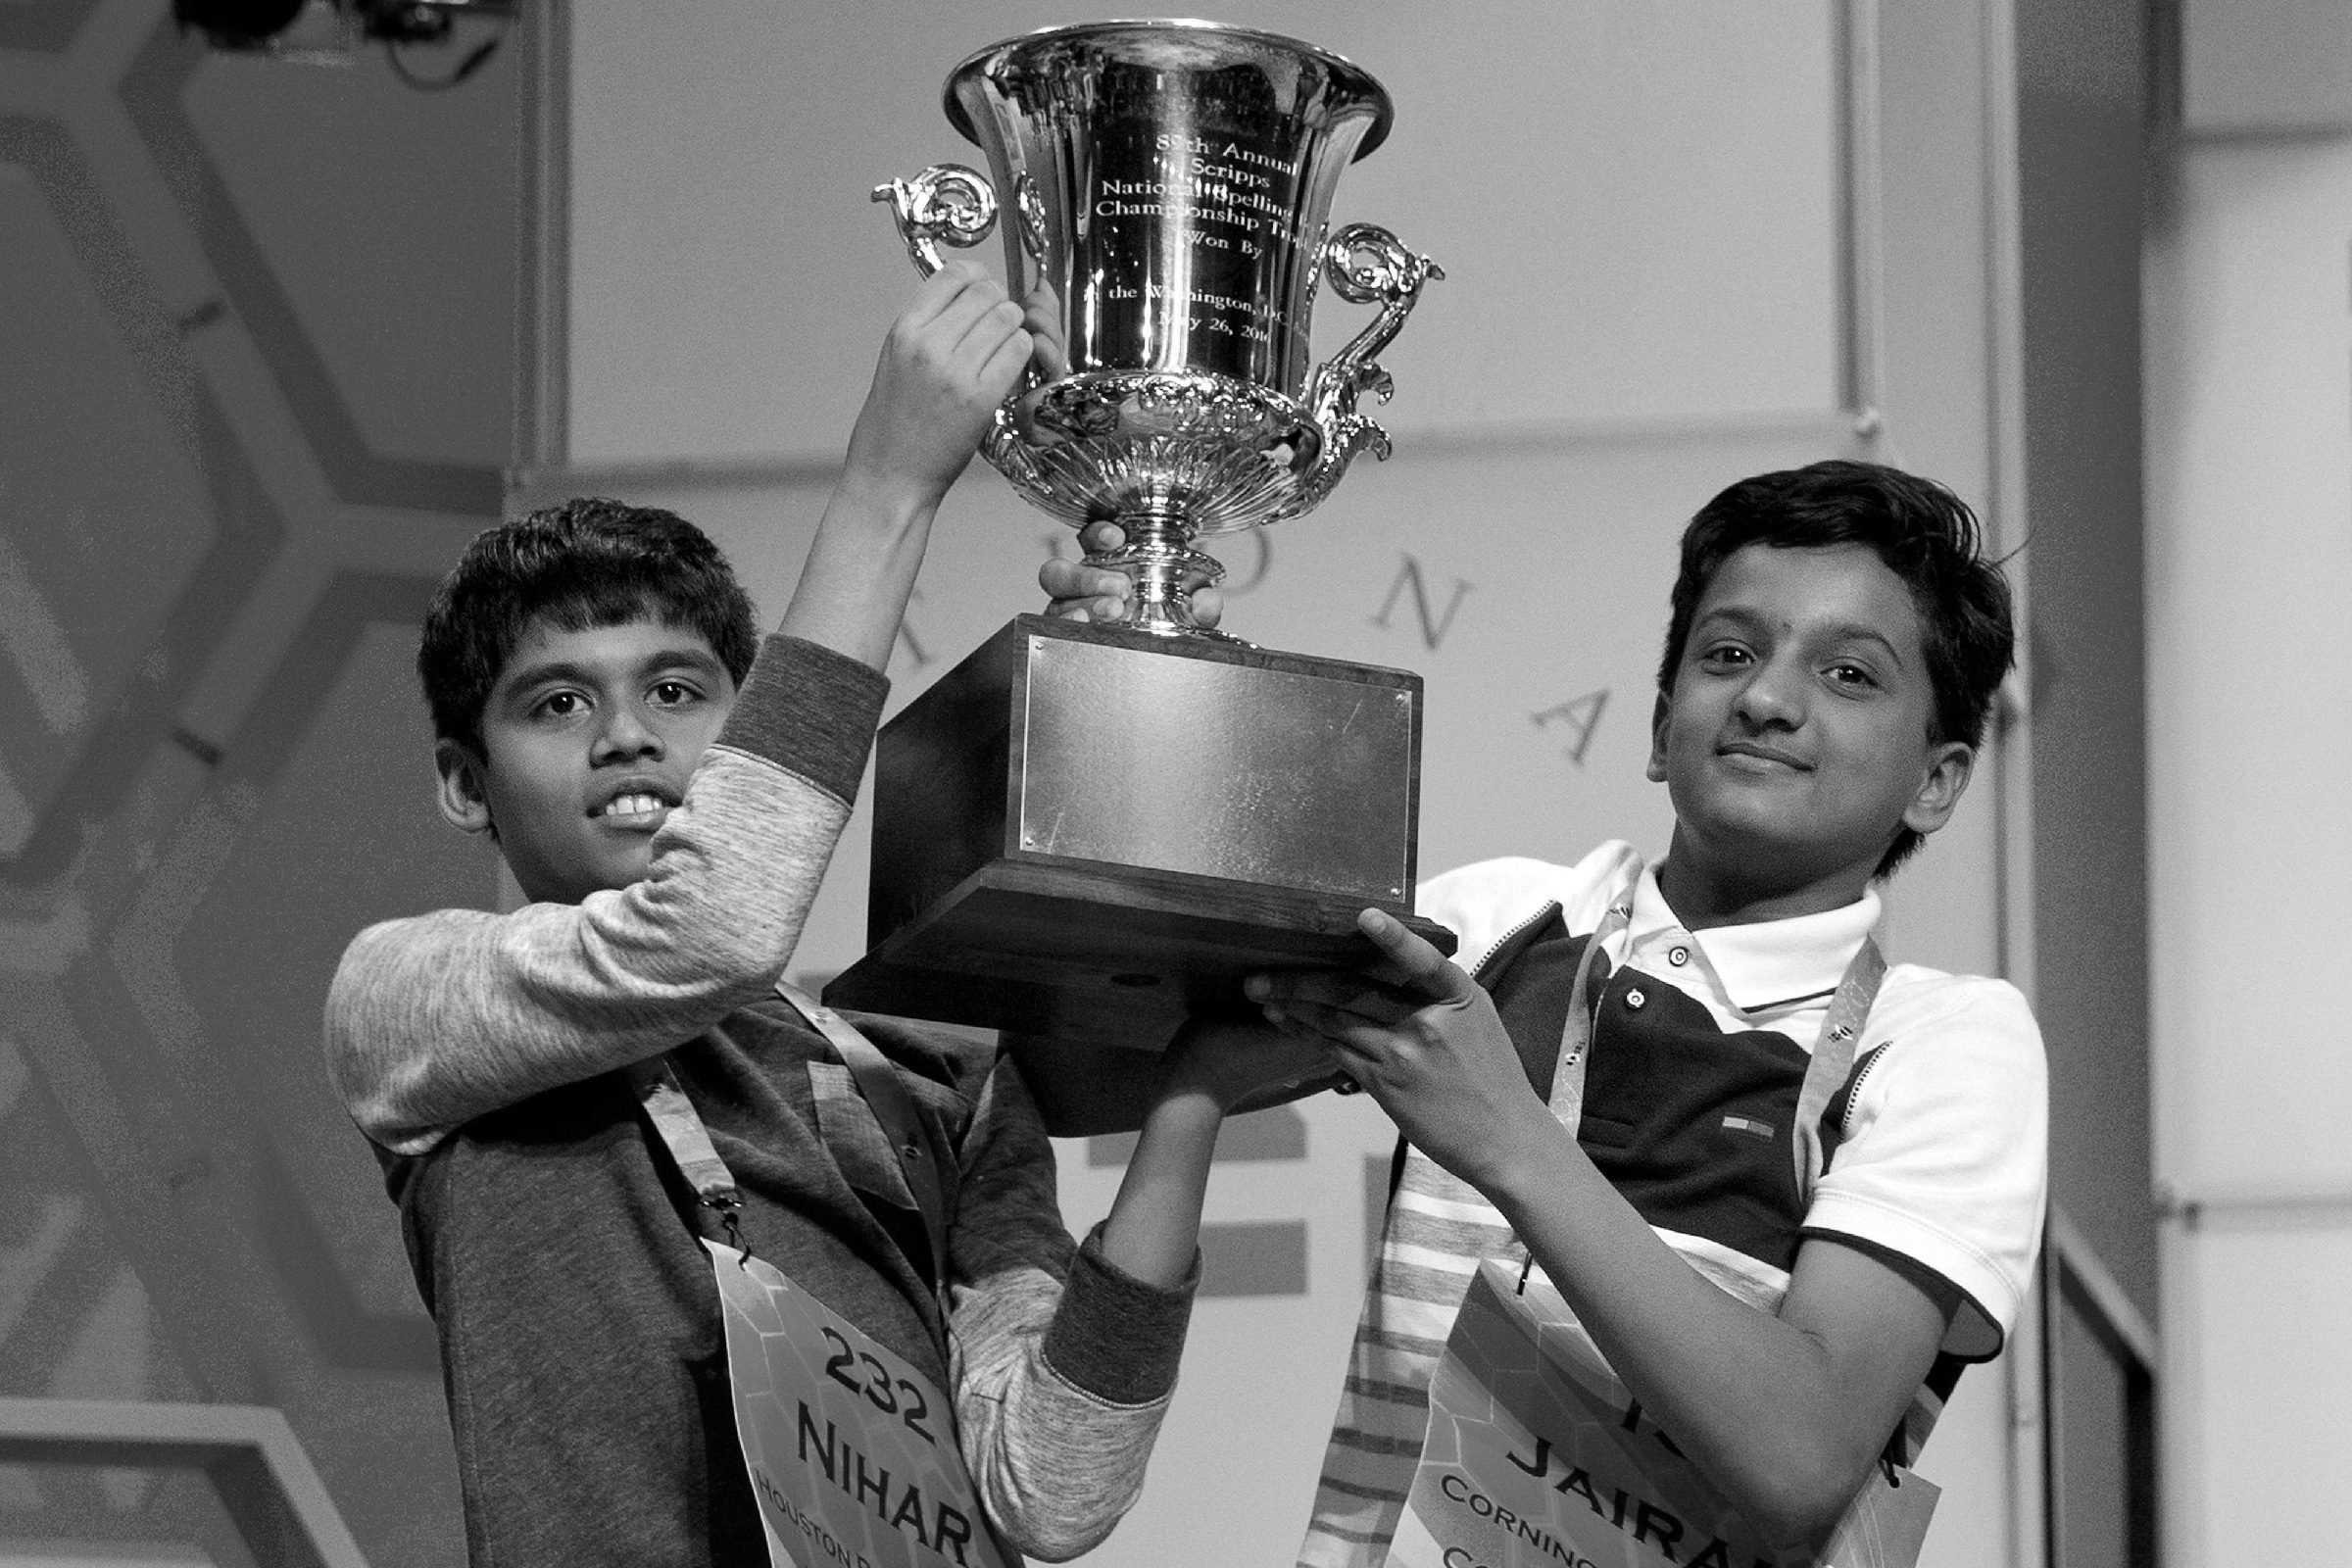 Jairam Hathwar, Nihar Janga Nihar Janga, 11, of Austin, Texas, and Jairam Hathwar, 13, of Painted Post, N.Y., hold up the trophy after being named co-champions at the 2016 National Spelling Bee, in National Harbor, Md., on